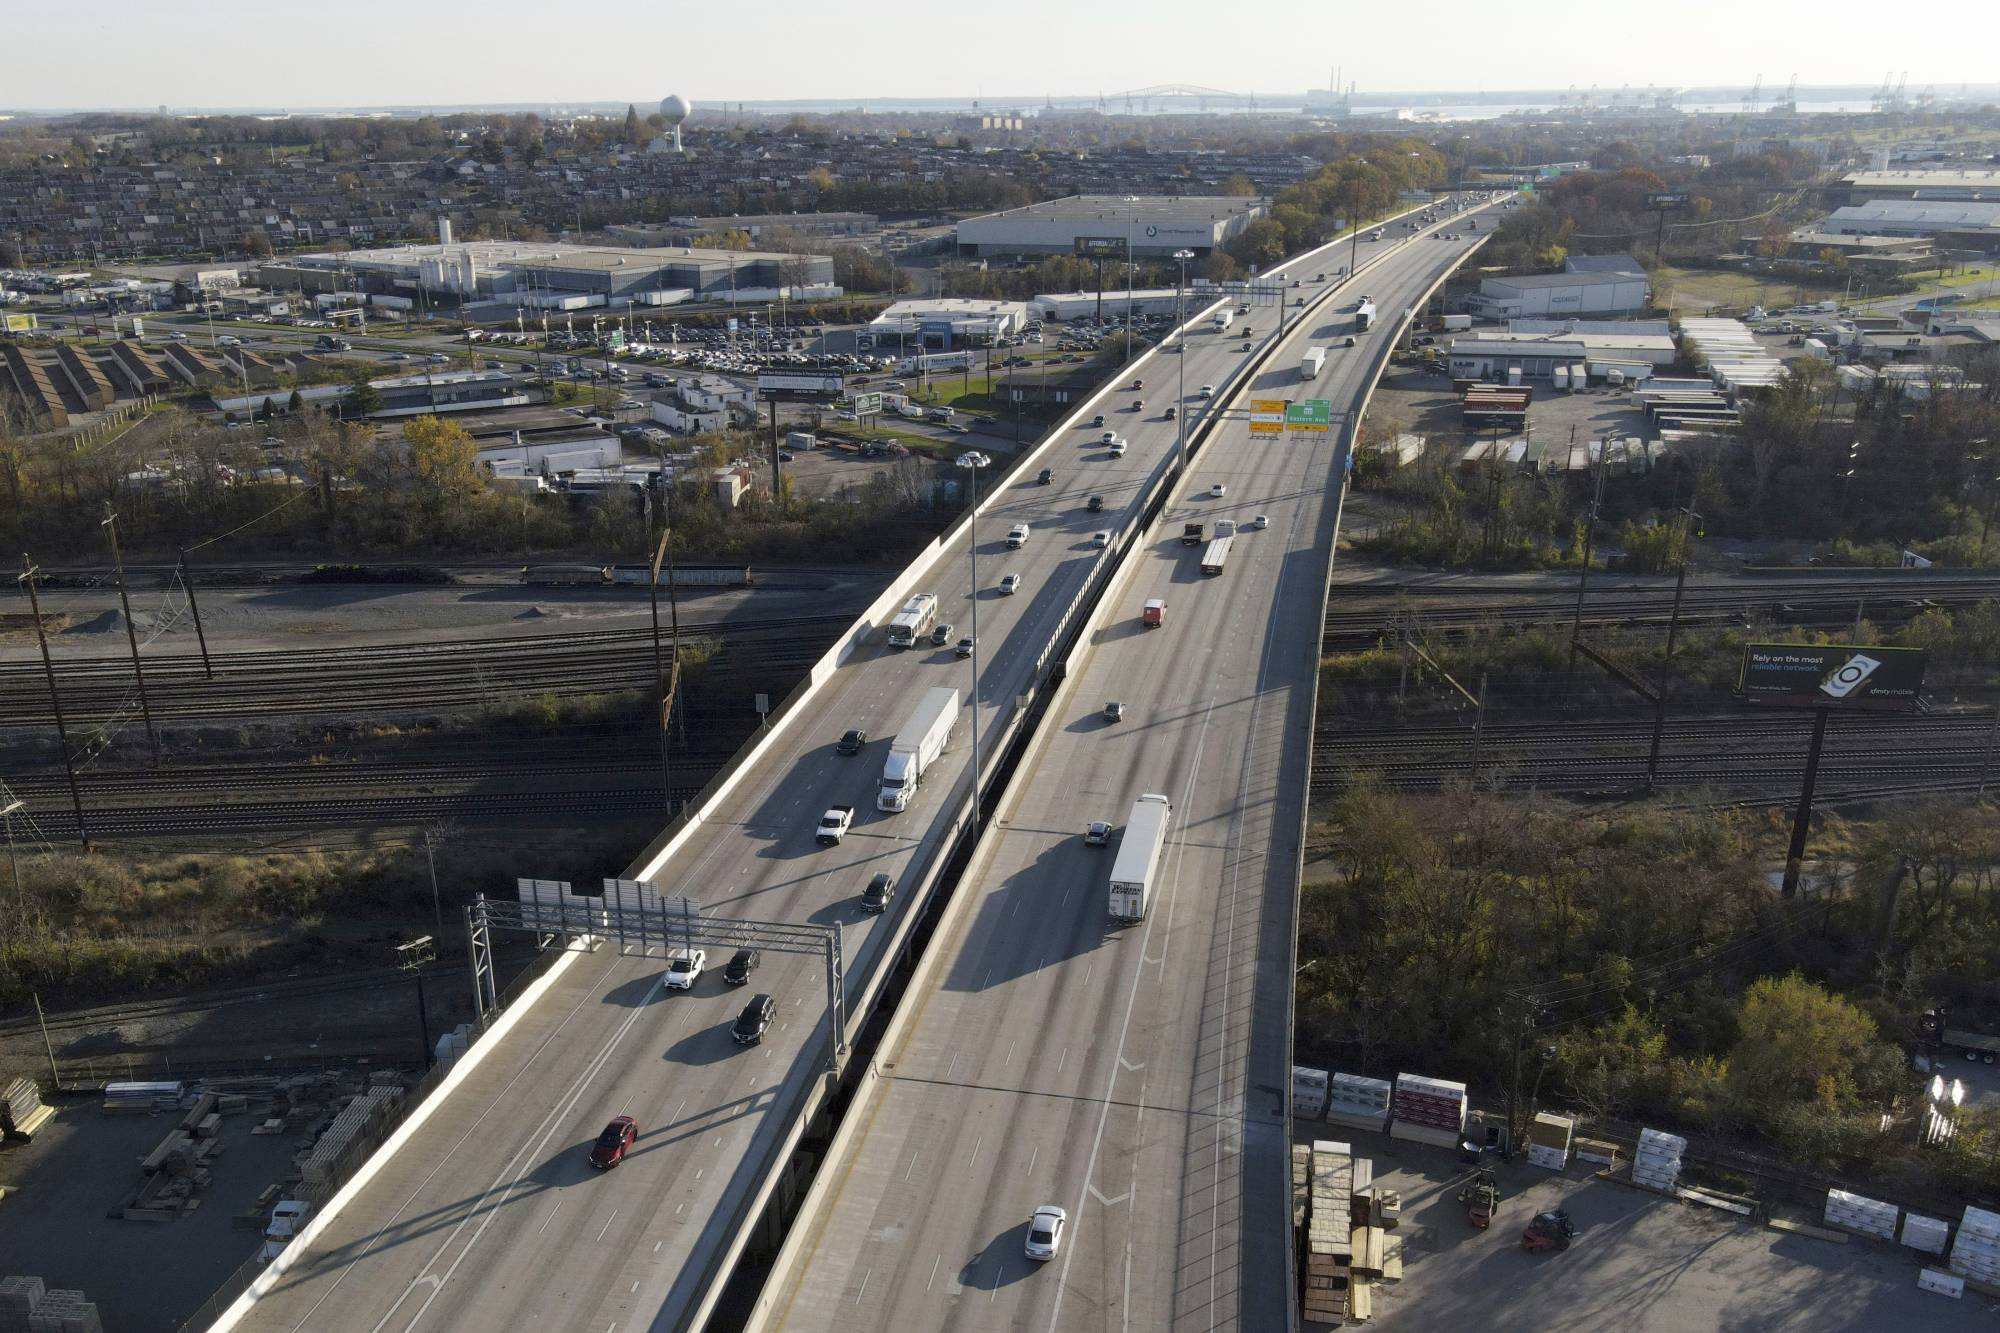 Vehicles travel along Interstate 95 in Rosedale, Maryland, on Nov. 24. AAA predicts that about 85 million Americans will travel between Dec. 23 and Jan. 3, most of them by car. If true, that would be a drop of nearly one-third from a year ago, but still a massive migration taking place in the middle of a pandemic.